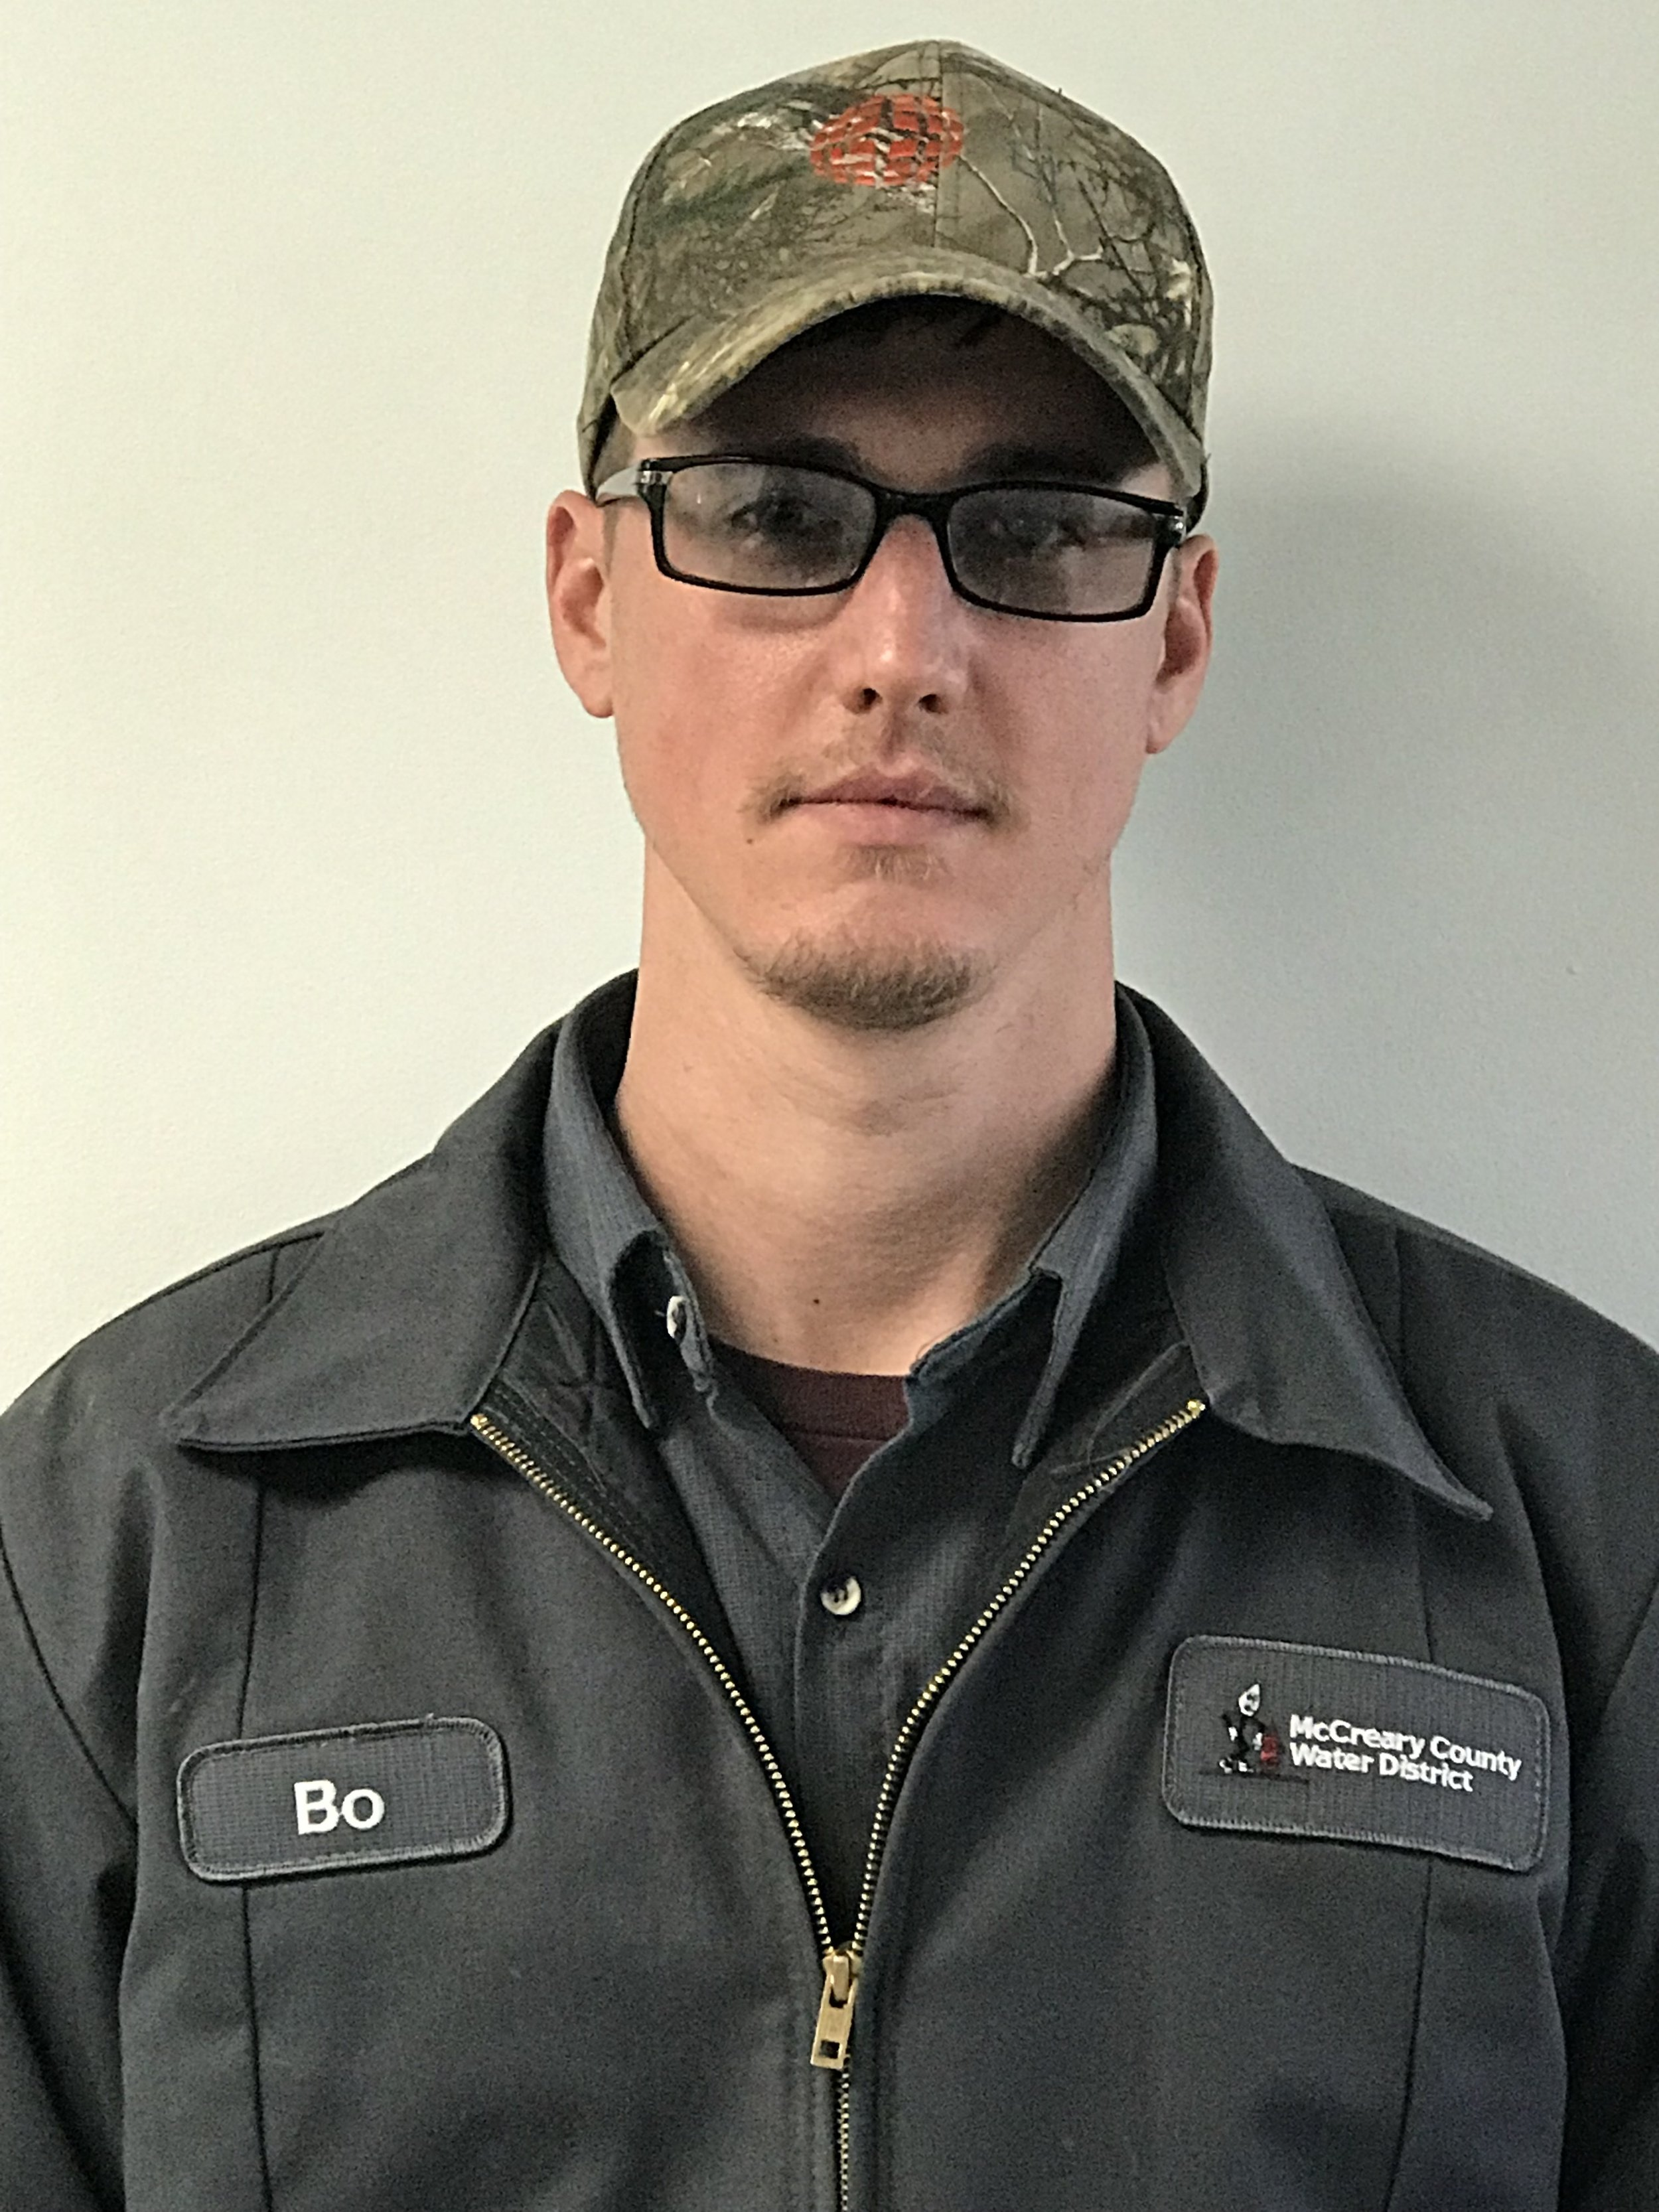 BO KING  has worked at the water district since 2005. He holds a Drinking Water Treatment Class IV Certification.